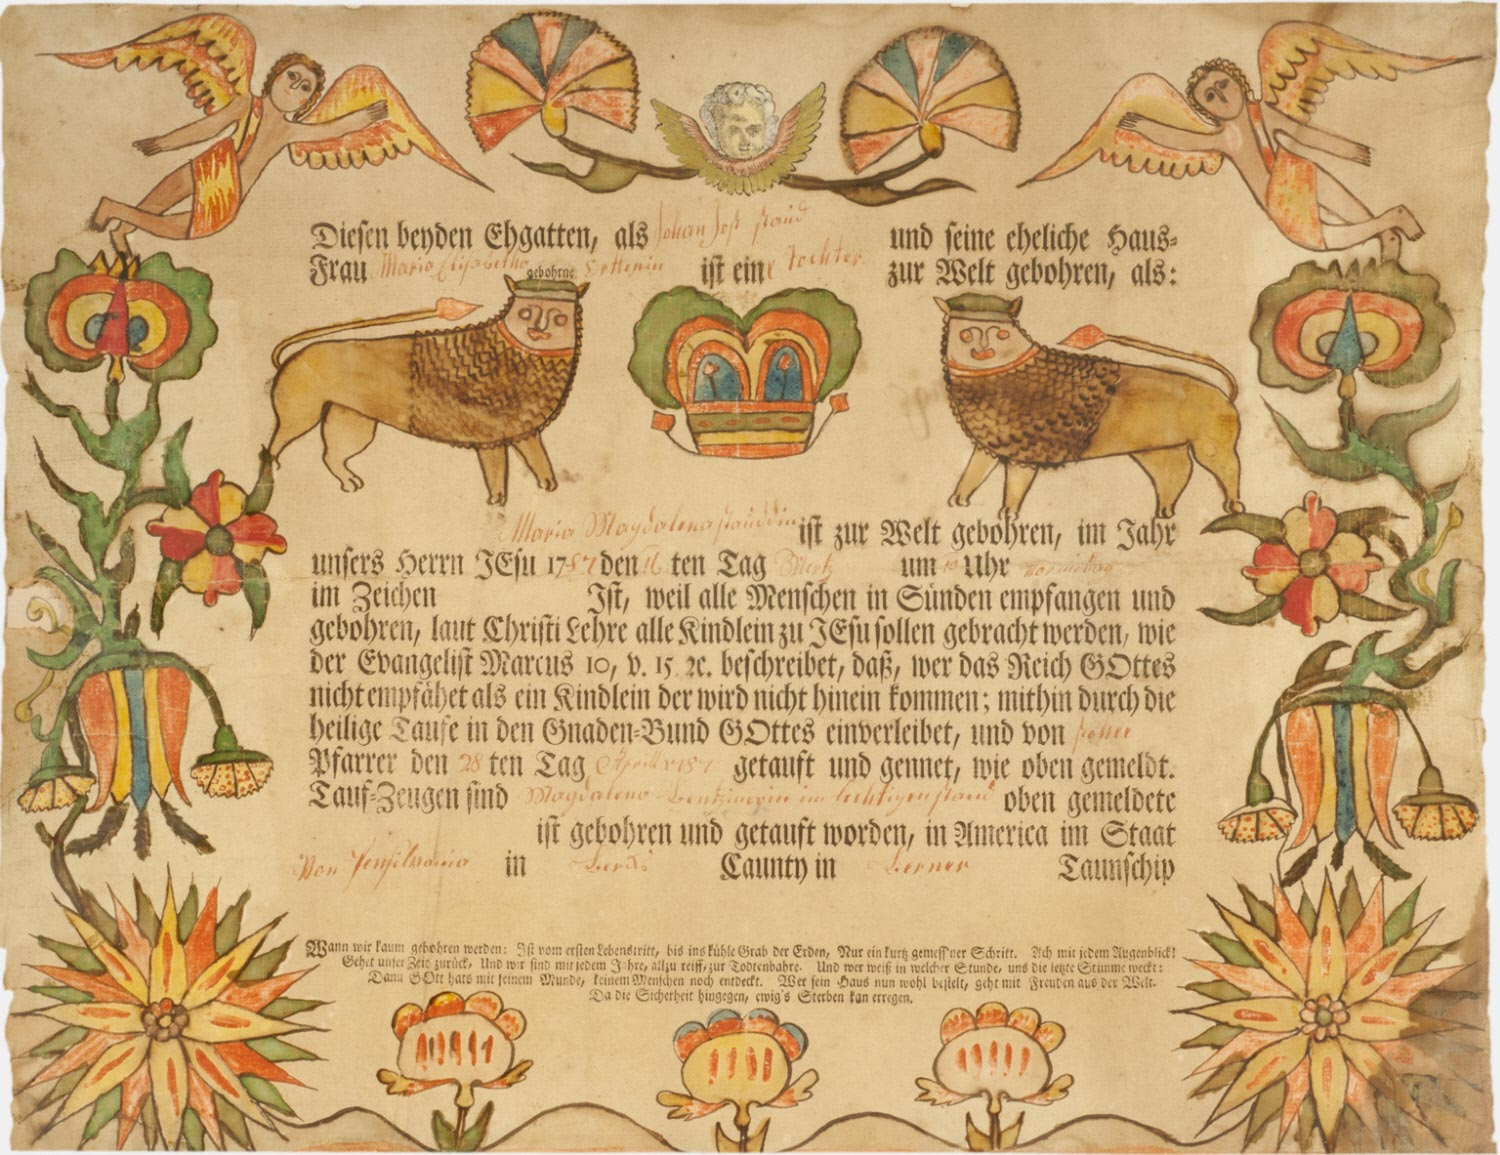 Birth and Baptismal Certificate for Maria Magdalena Staud (born March 16, 1787)